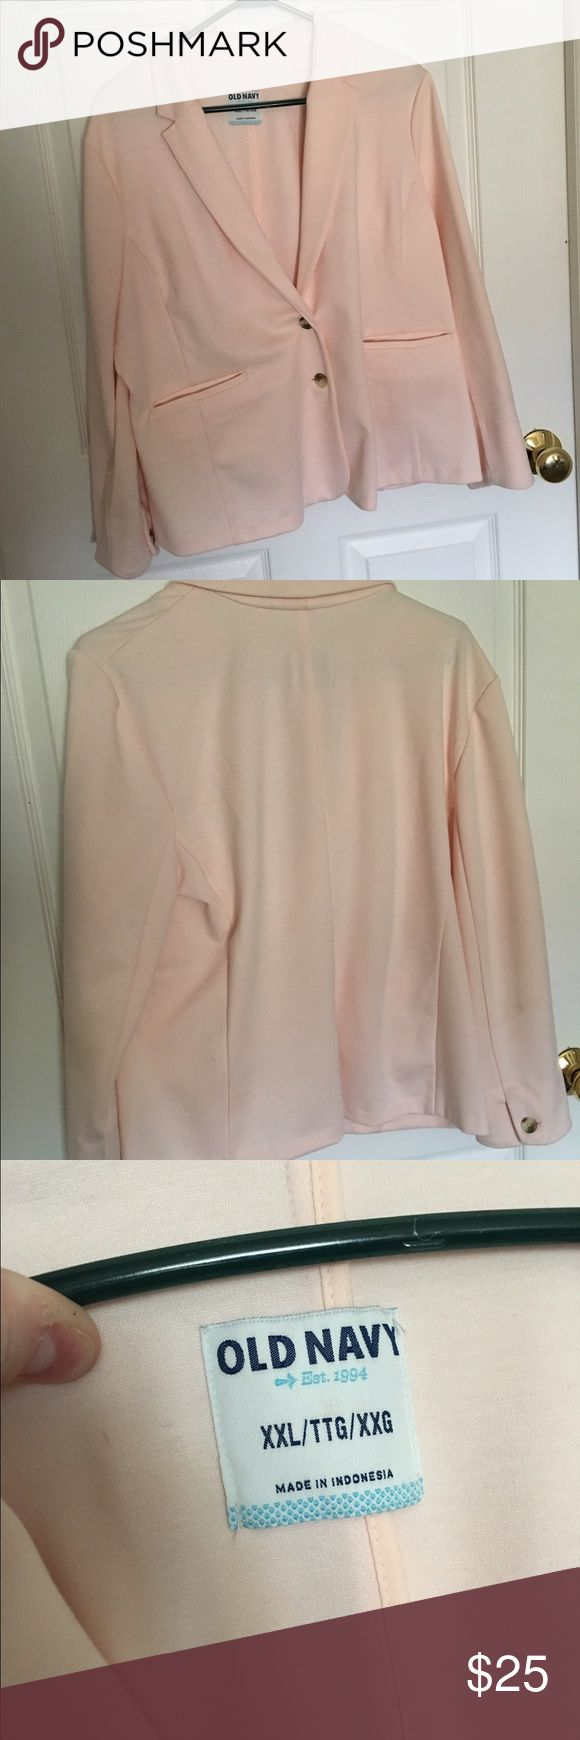 Light pink blazer Super soft light pink blazer. Jersey like material. Very stretchy and comfortable. Worn once. Make a reasonable offer!! Old Navy Jackets & Coats Blazers